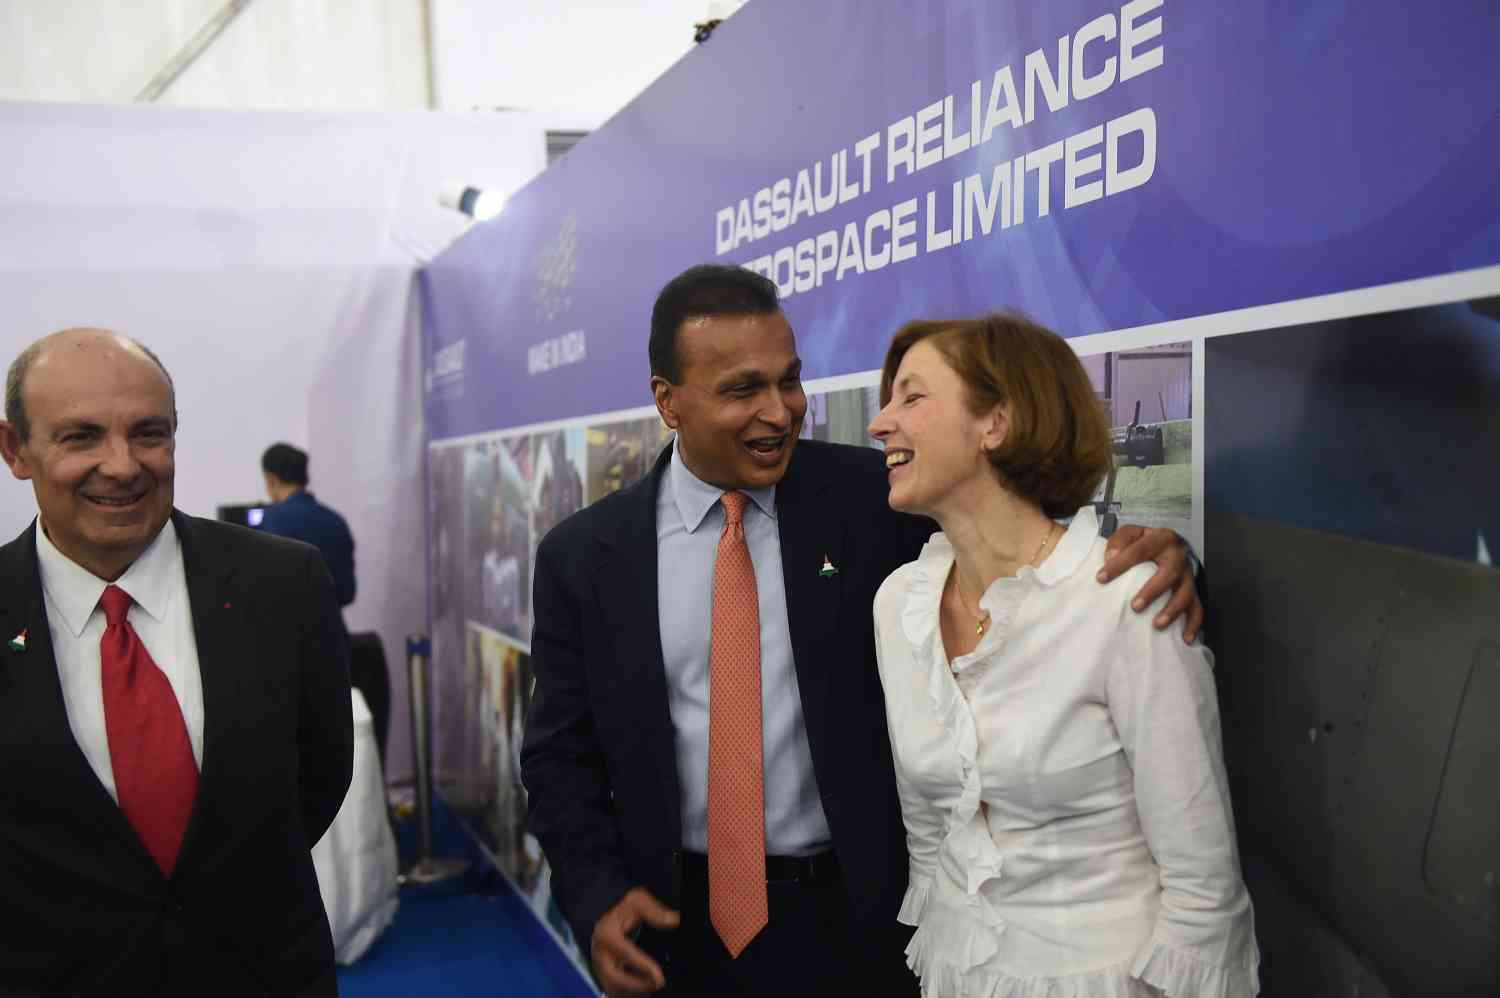 Chairman and CEO of Dassault Aviation Eric Trappier (left), French Defence Minister Florence Parly (right) and chairman of Reliance Group Anil Ambani in Nagpur on October 27, 2017, where they participated in the foundation stone laying ceremony of Dassault Reliance Aerospace Limited. (Photo credit: Money Sharma/AFP).